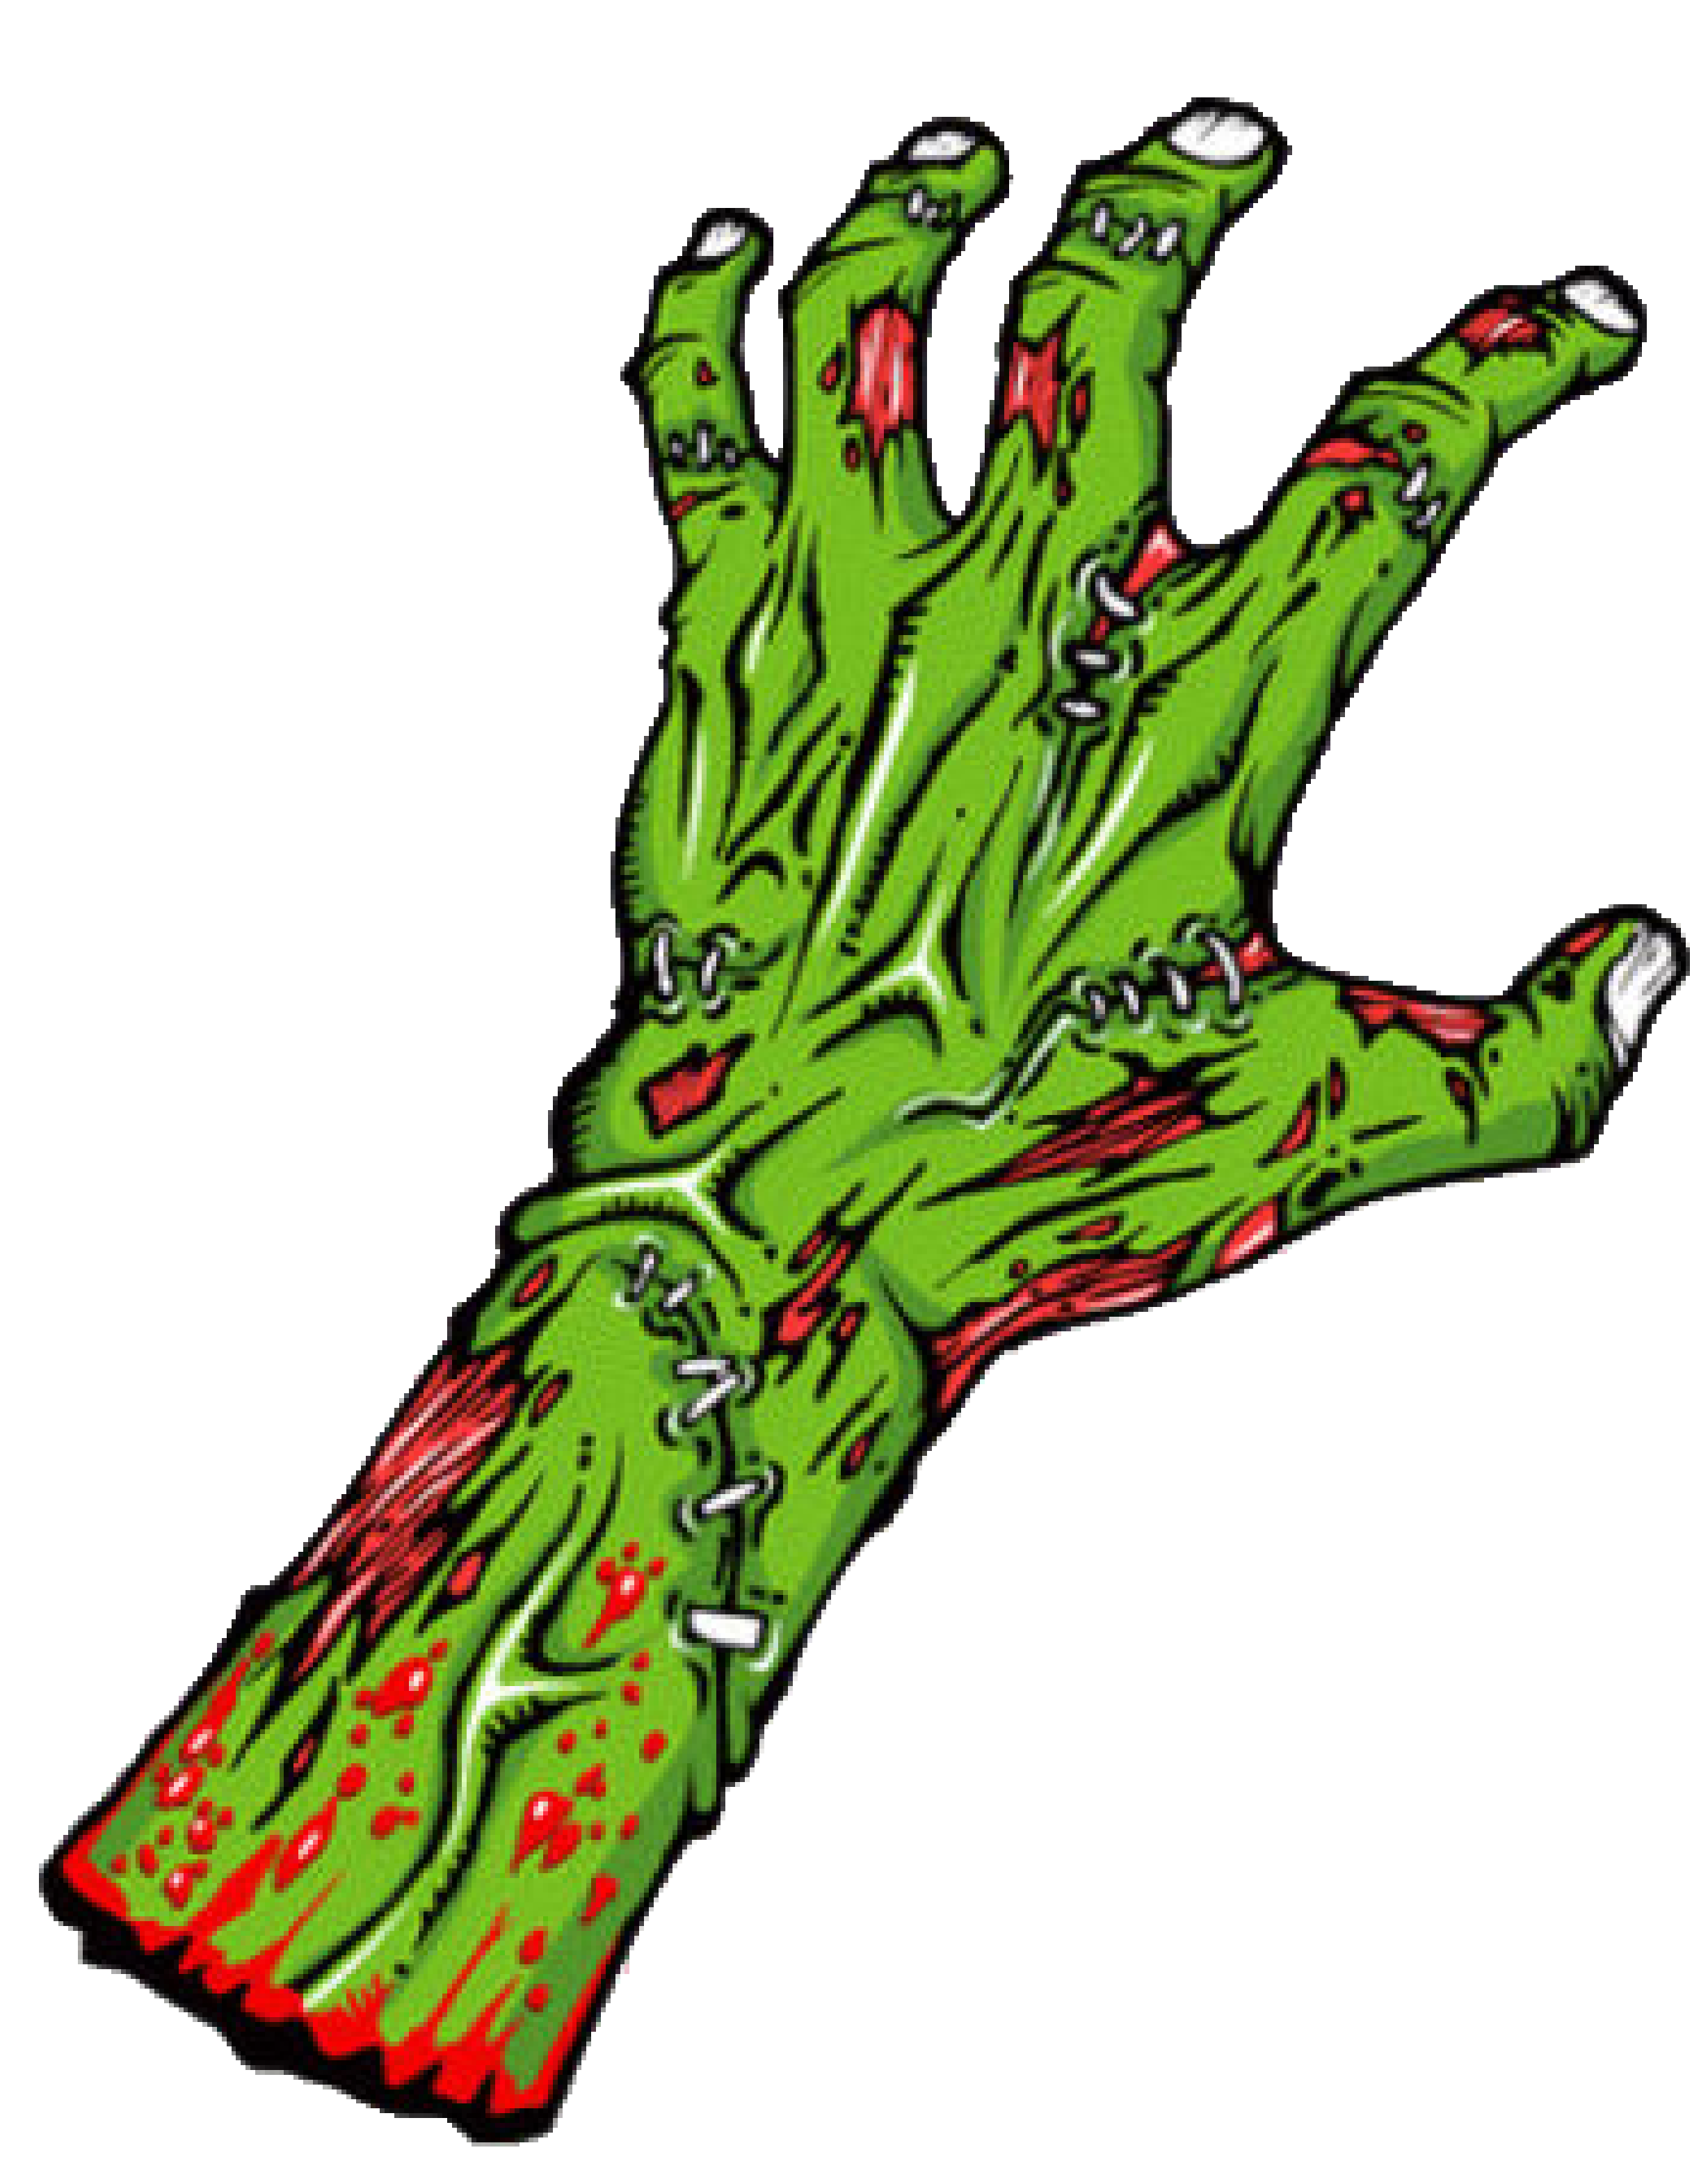 clip art download Black and white hand. Zombie arm clipart.